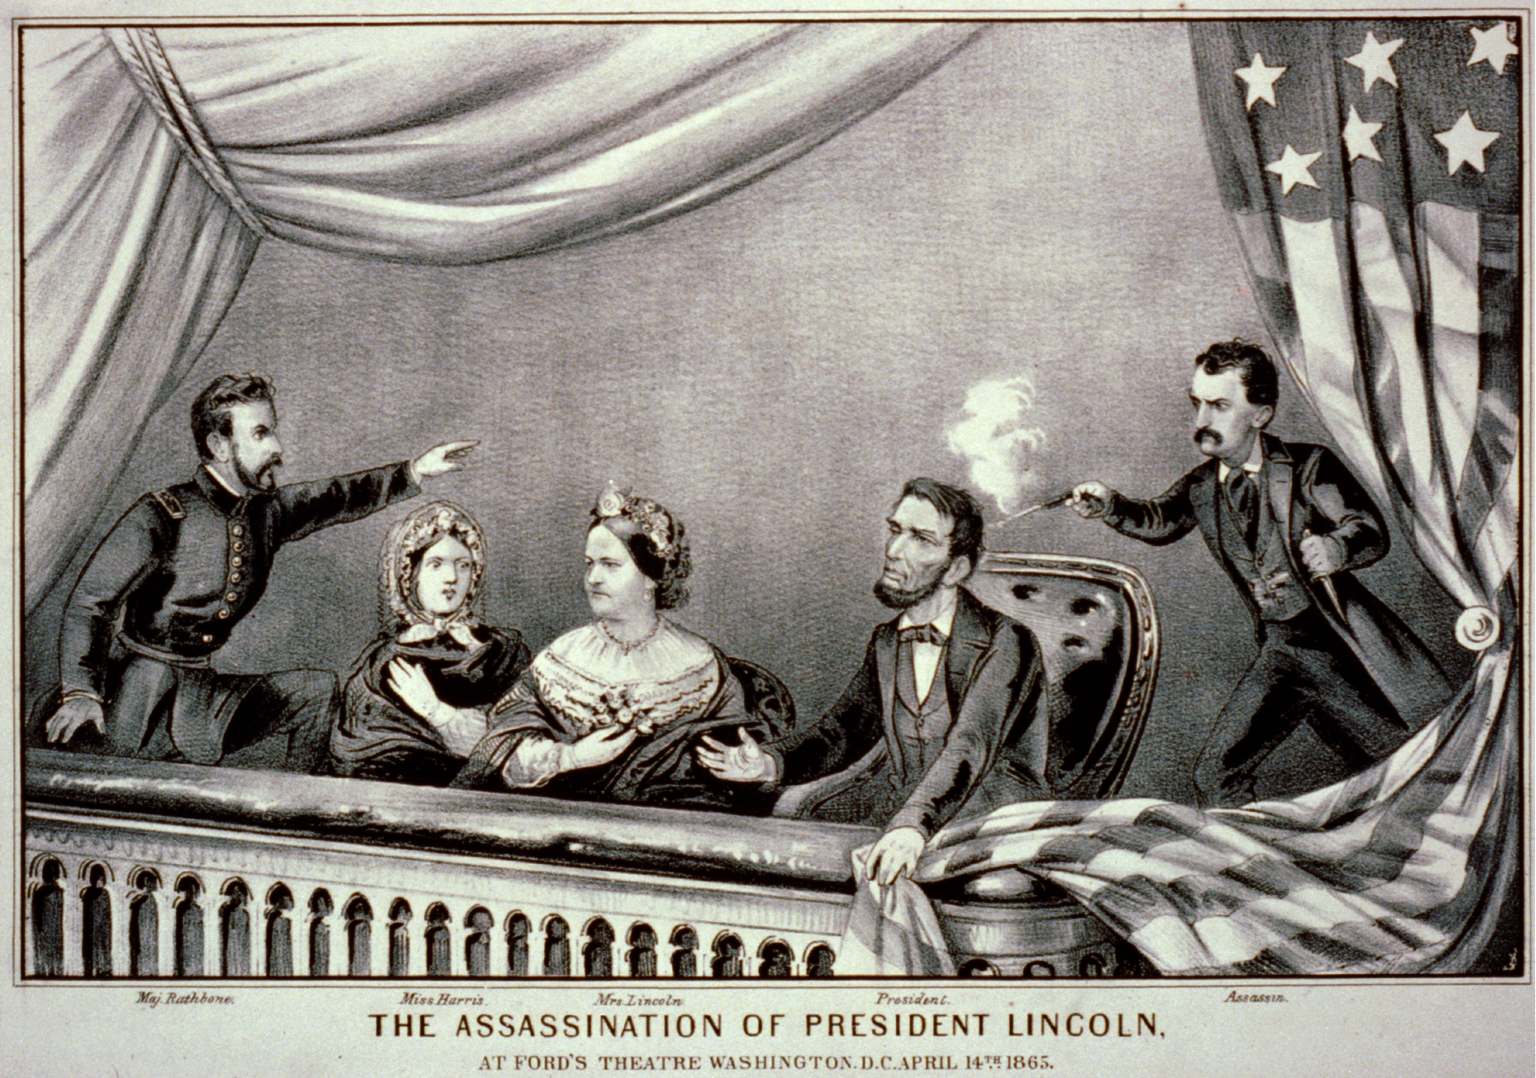 """The Assassination of President Lincoln - Currier and Ives 2"" by Currier & Ives, 1865. - This image is available from the United States Library of Congress's Prints and Photographs division under the digital ID cph.3b49830.This tag does not indicate the copyright status of the attached work. A normal copyright tag is still required. See Commons:Licensing for more information.العربية 